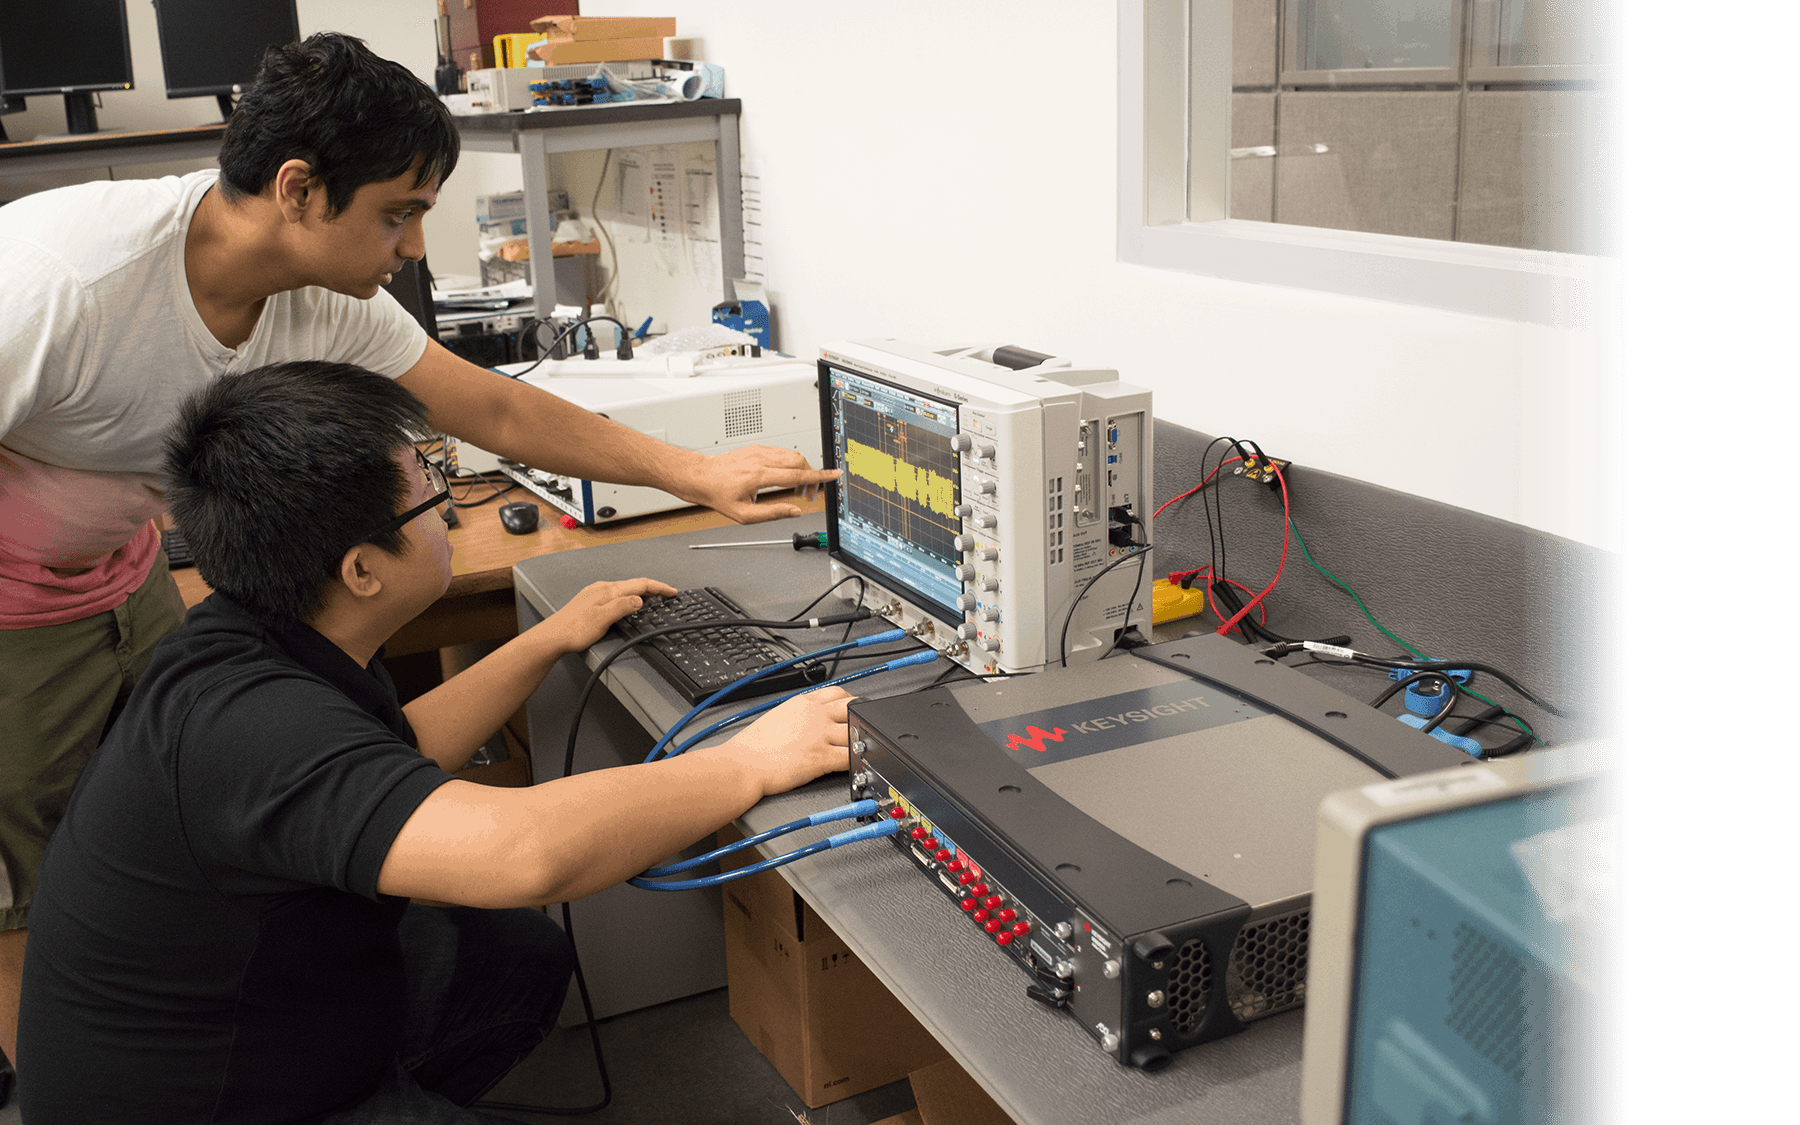 Largest In-Kind Equipment Gift to NYU Tandon Helps Propel NYU WIRELESS Beyond 5G